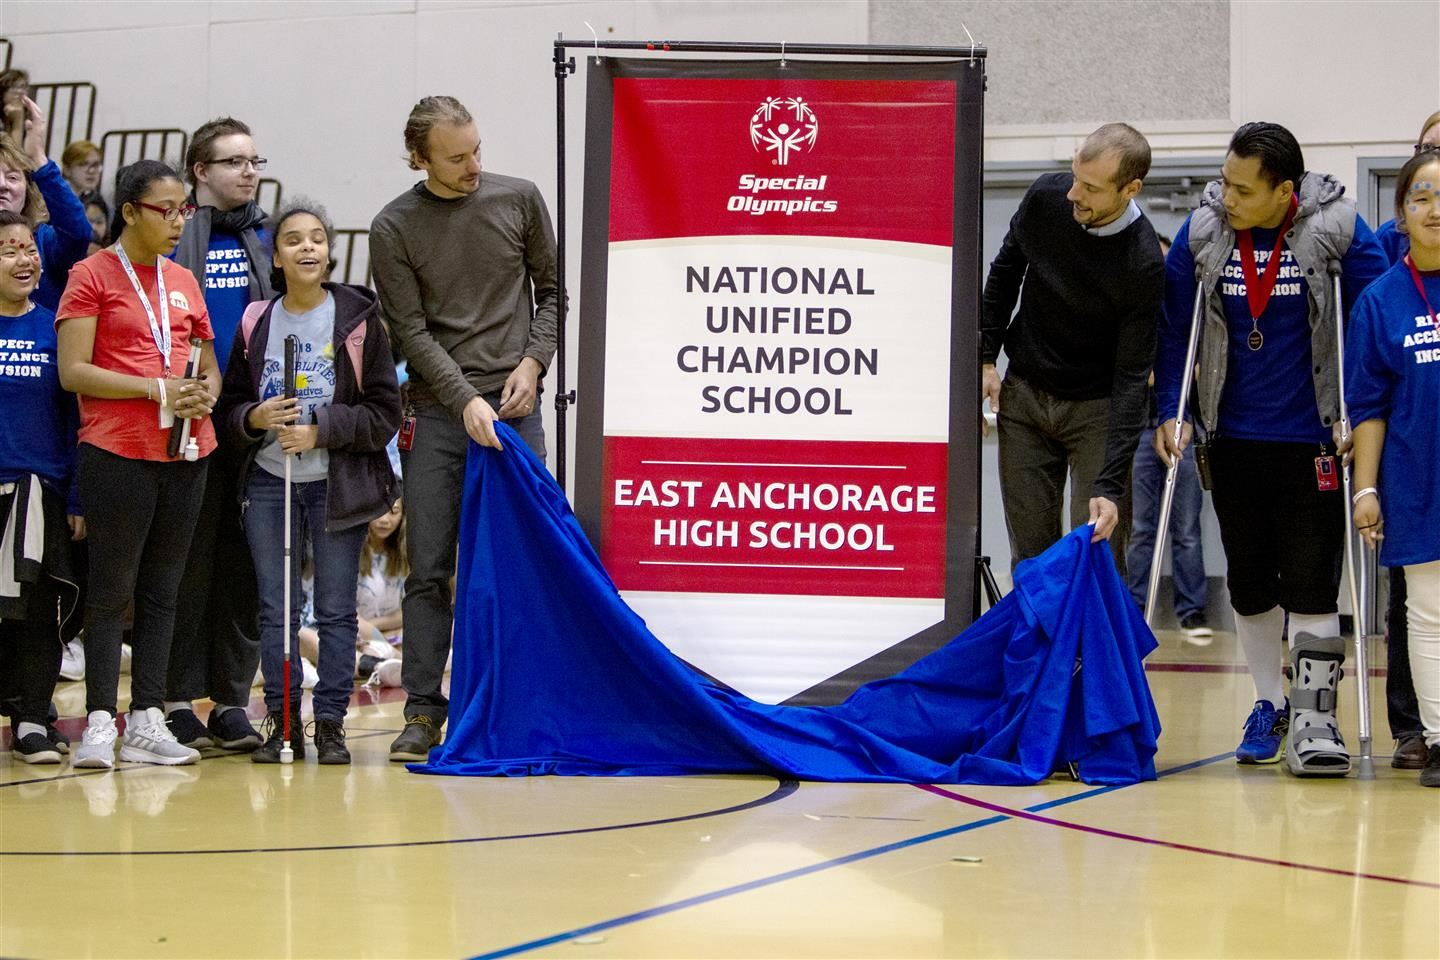 Unveiling the banner